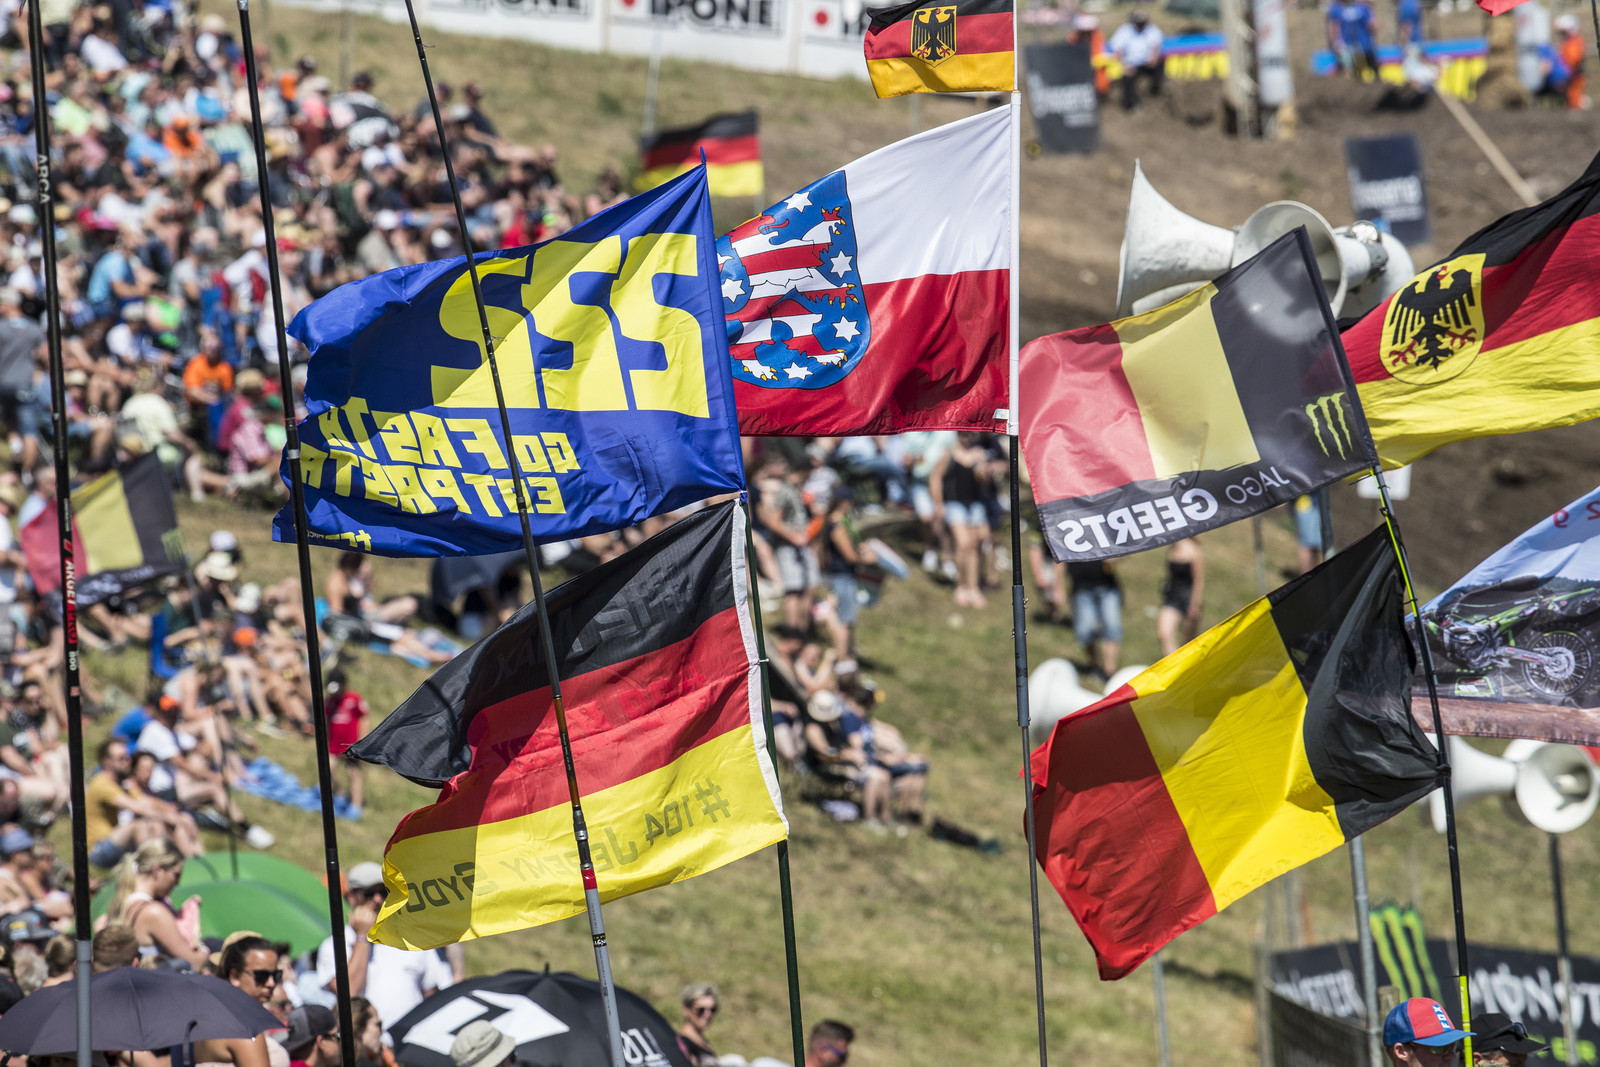 Even though Cairoli was missing in Germany because of a shoulder injury suffered last weekend, his fans were still supporting him. It is unknown when he's returning to racing.